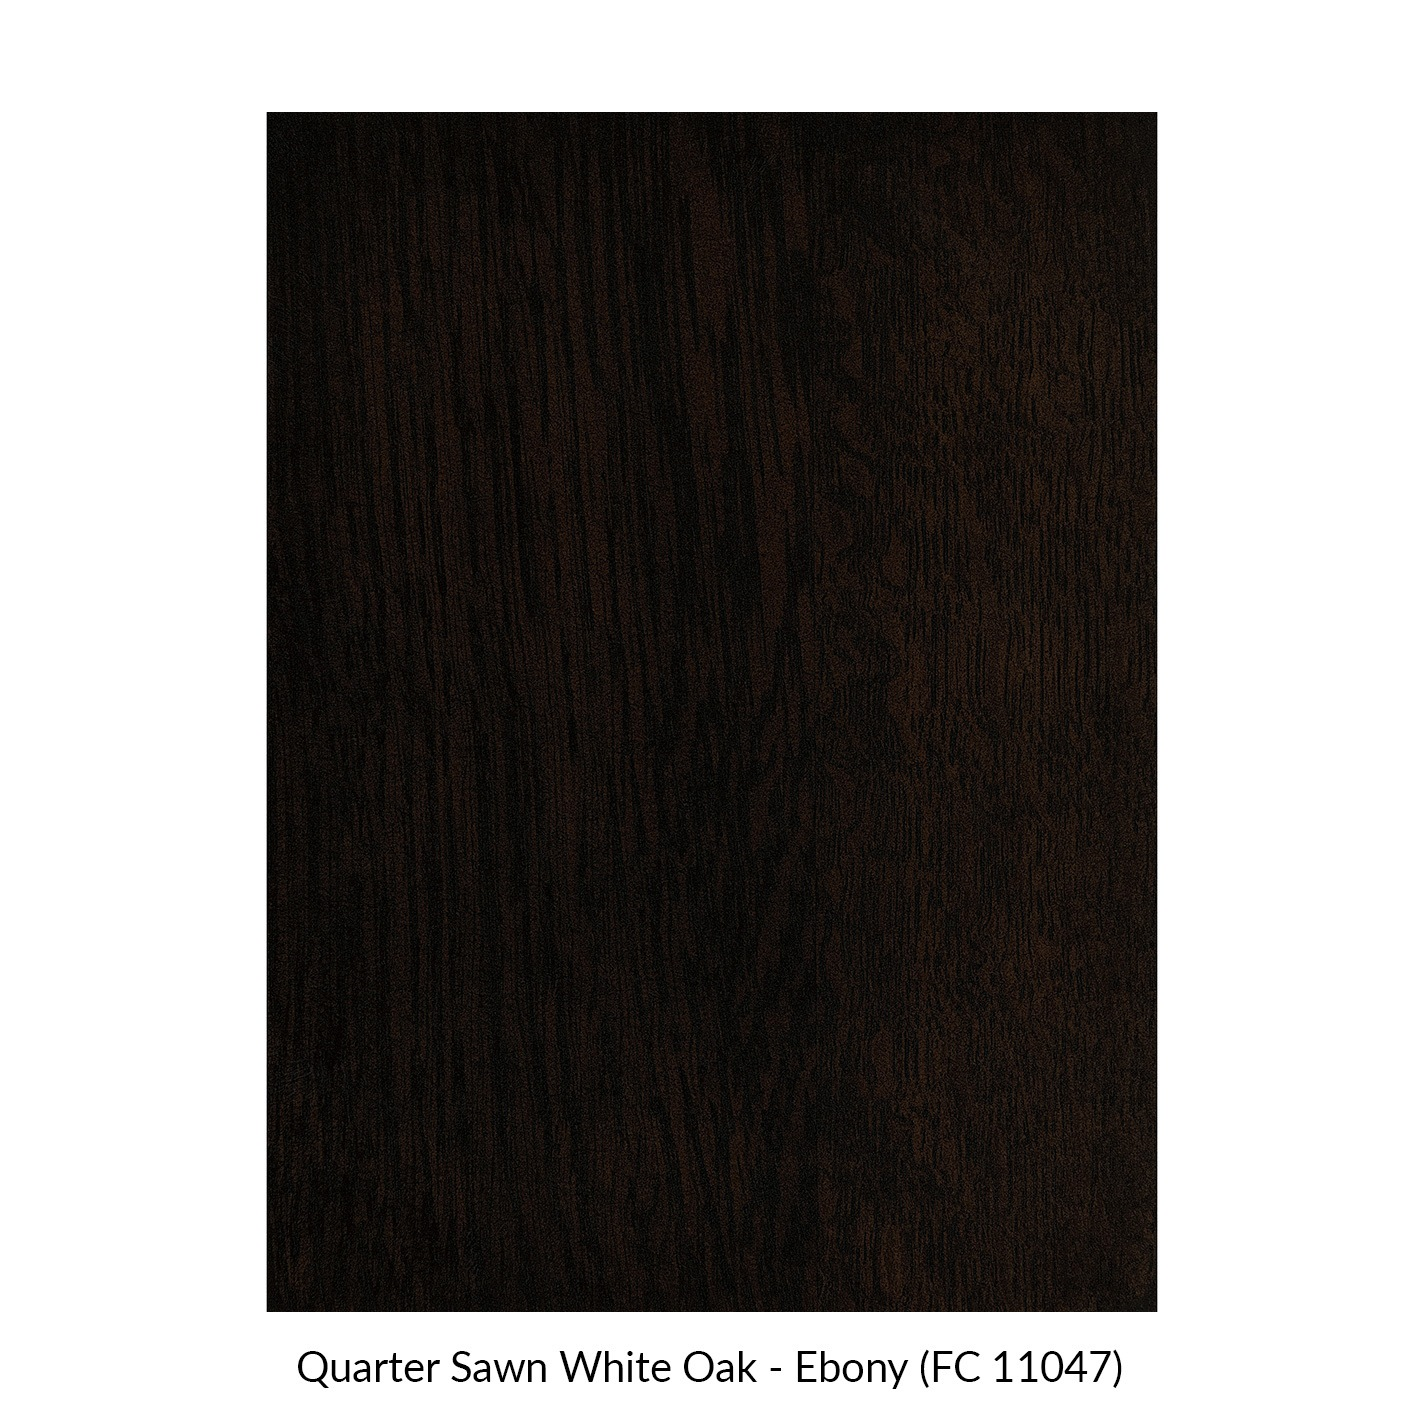 spectrum-quarter-sawn-white-oak-ebony-fc-11047.jpg